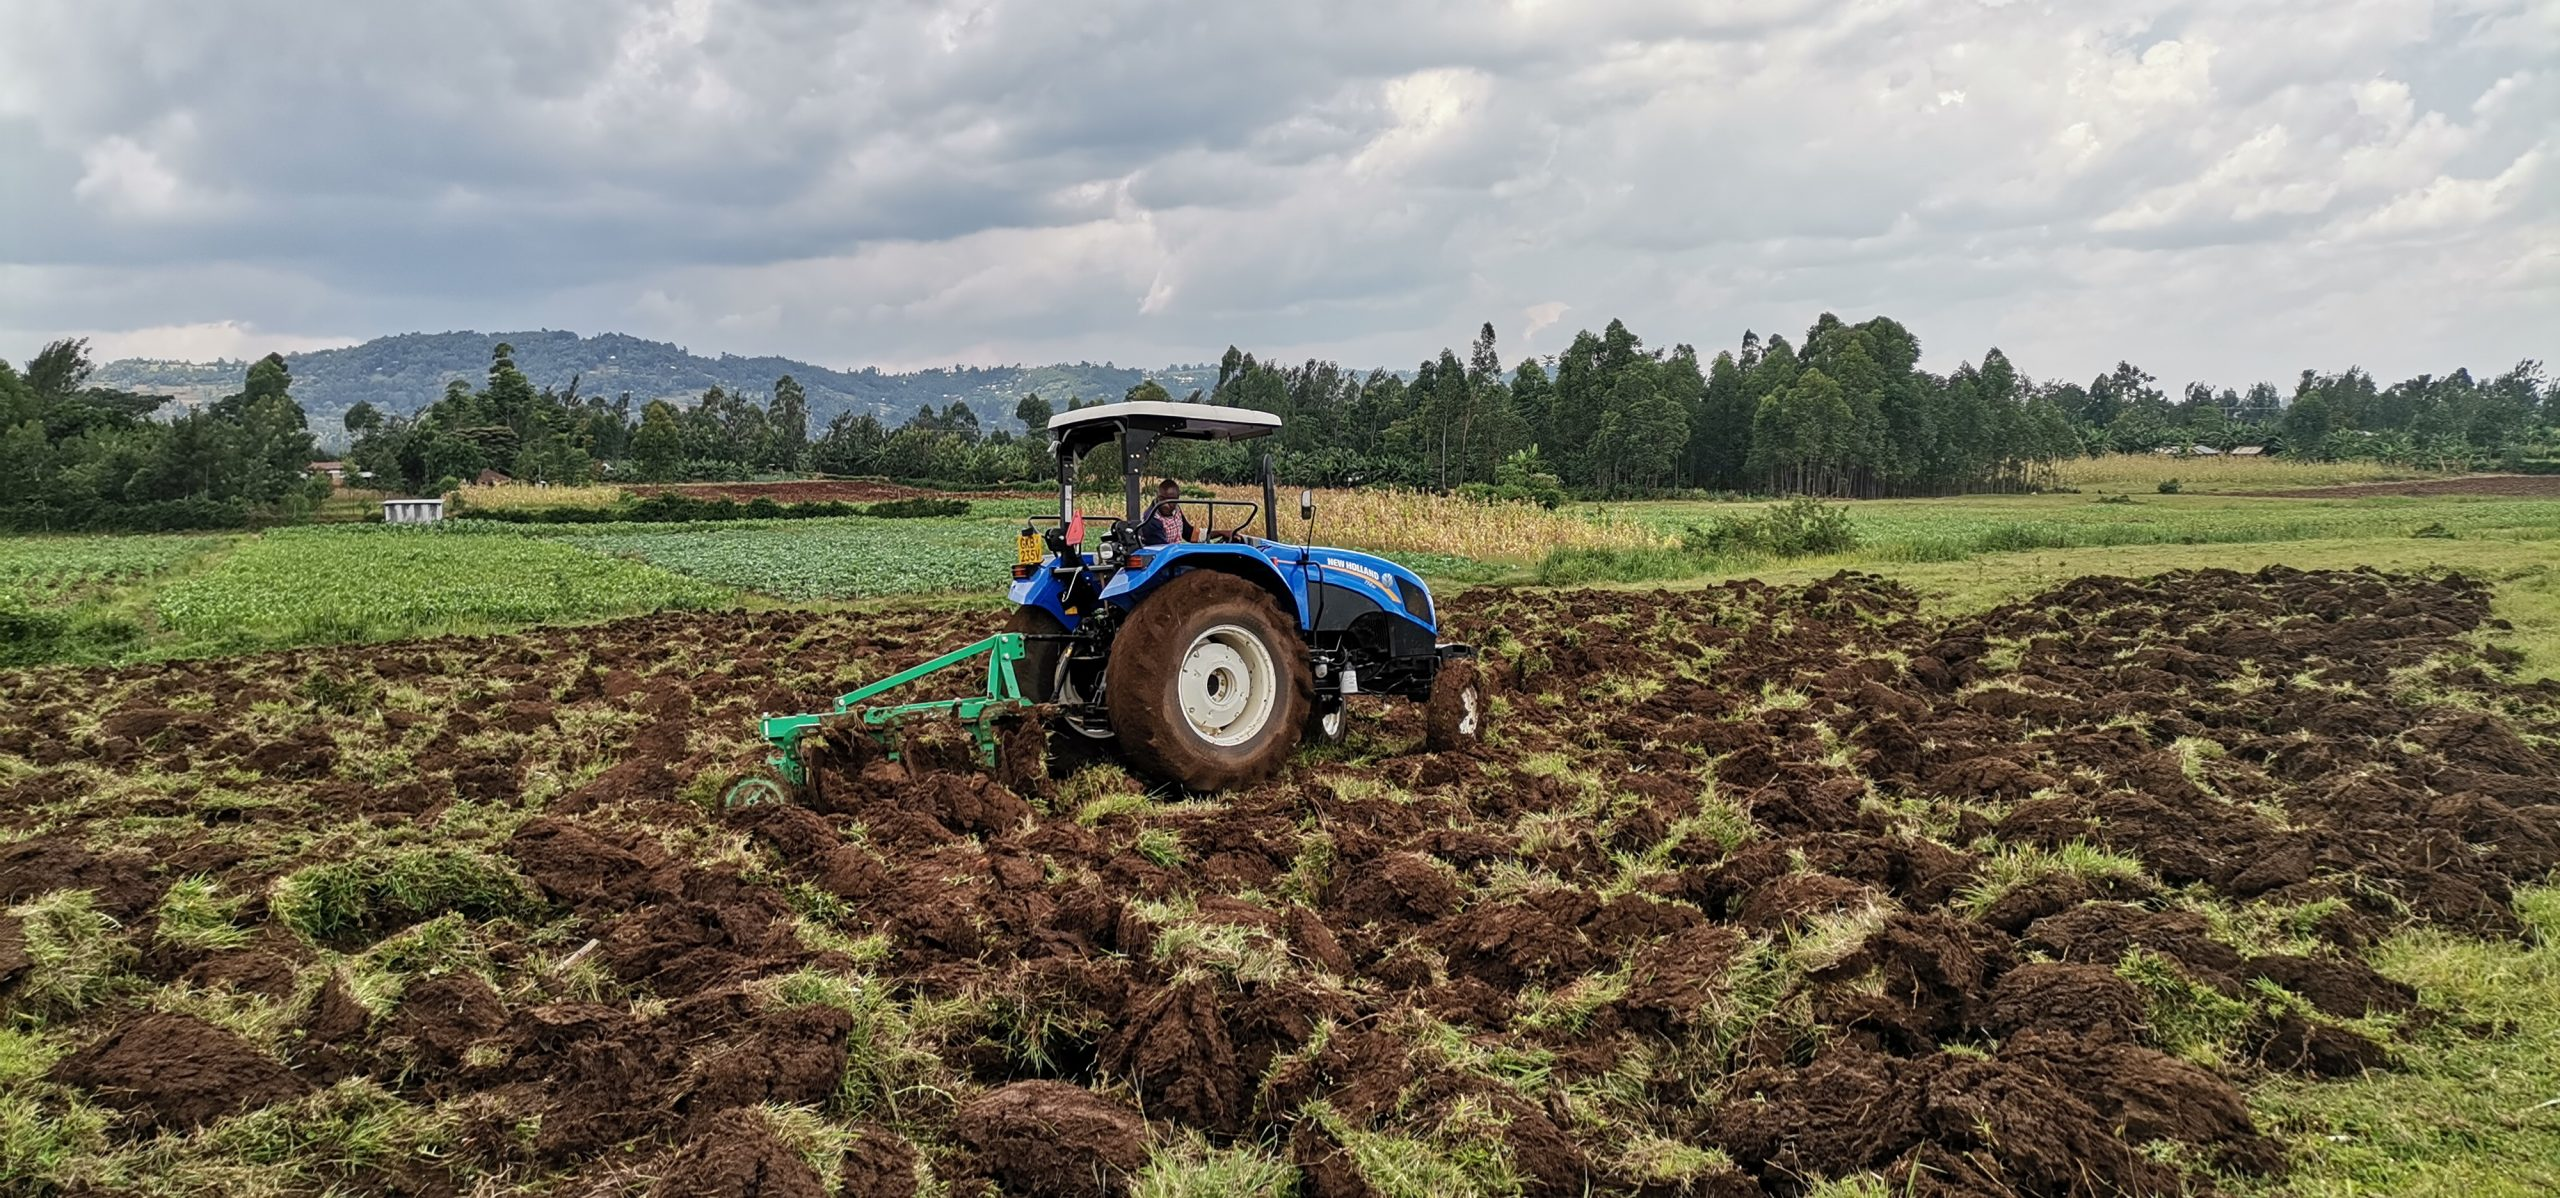 A tractor ploughing land